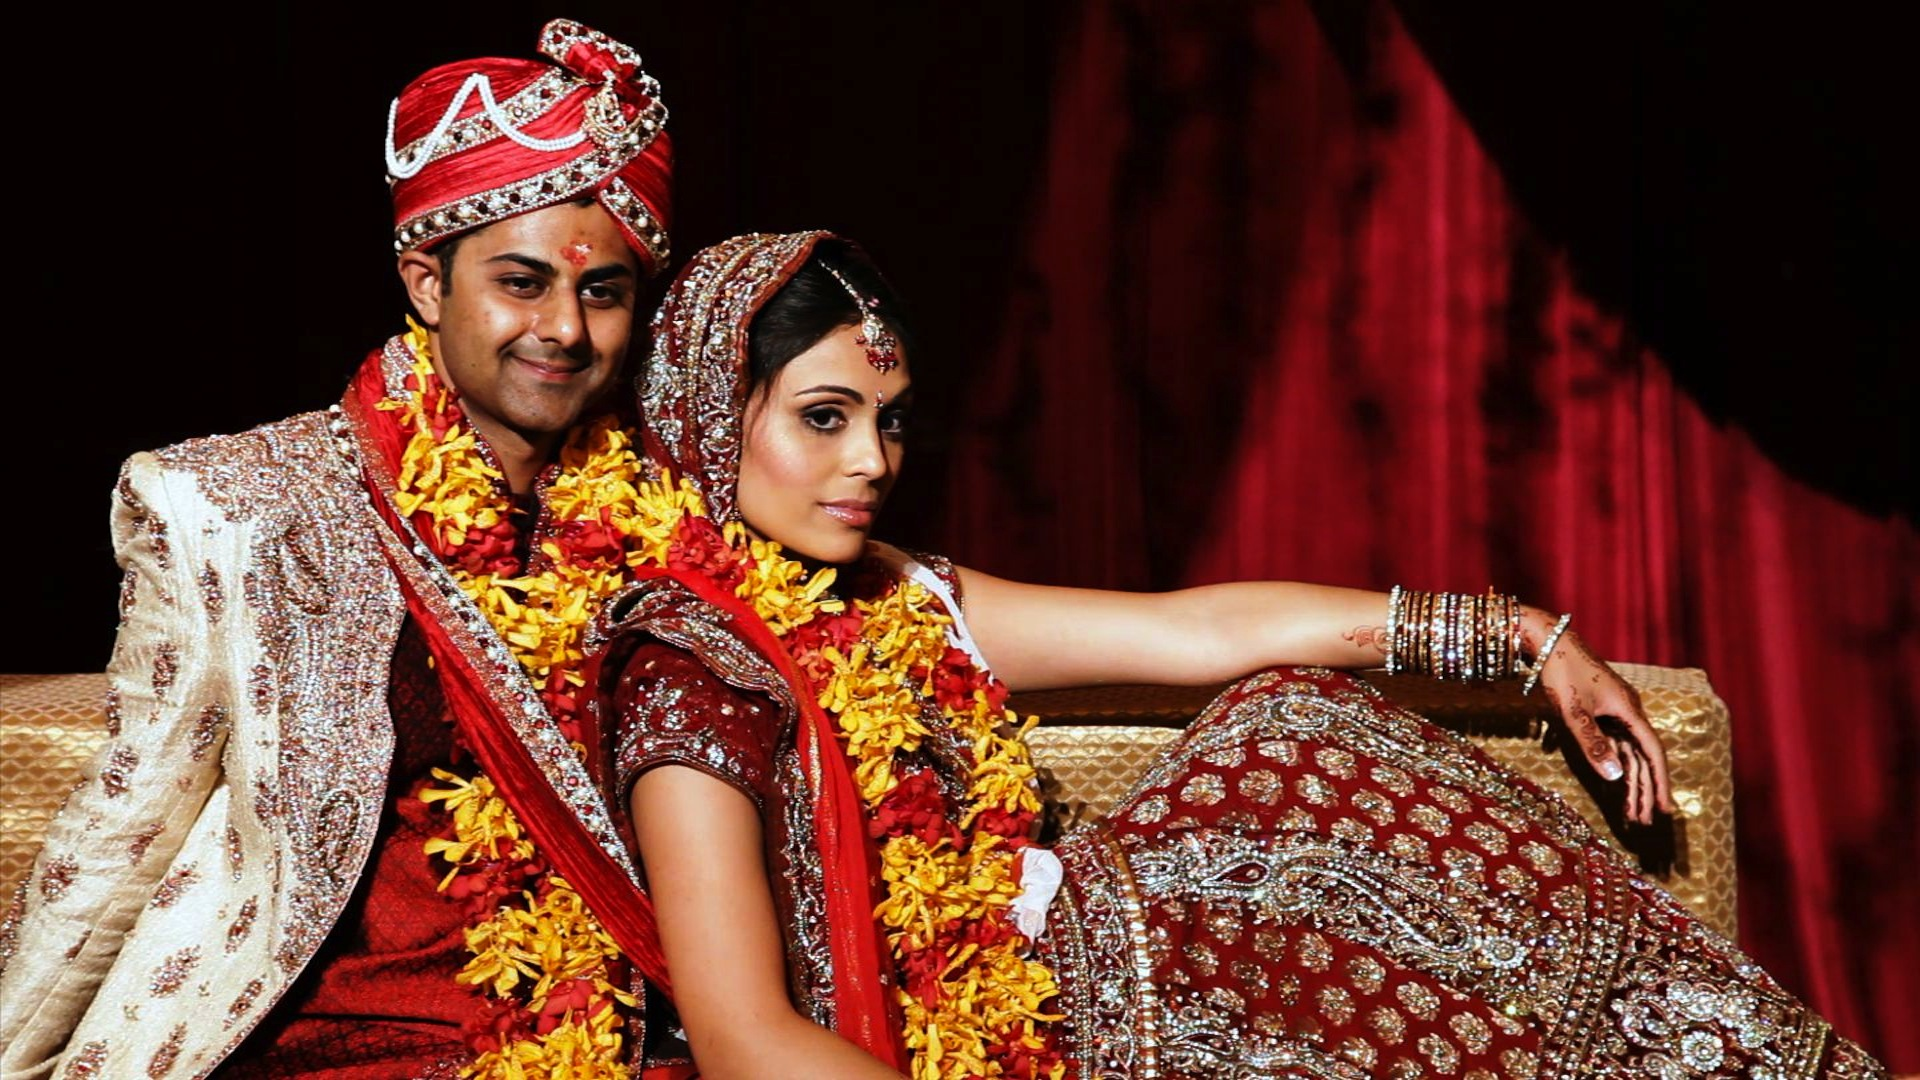 Traditional Indian wedding dresses of bride and groom